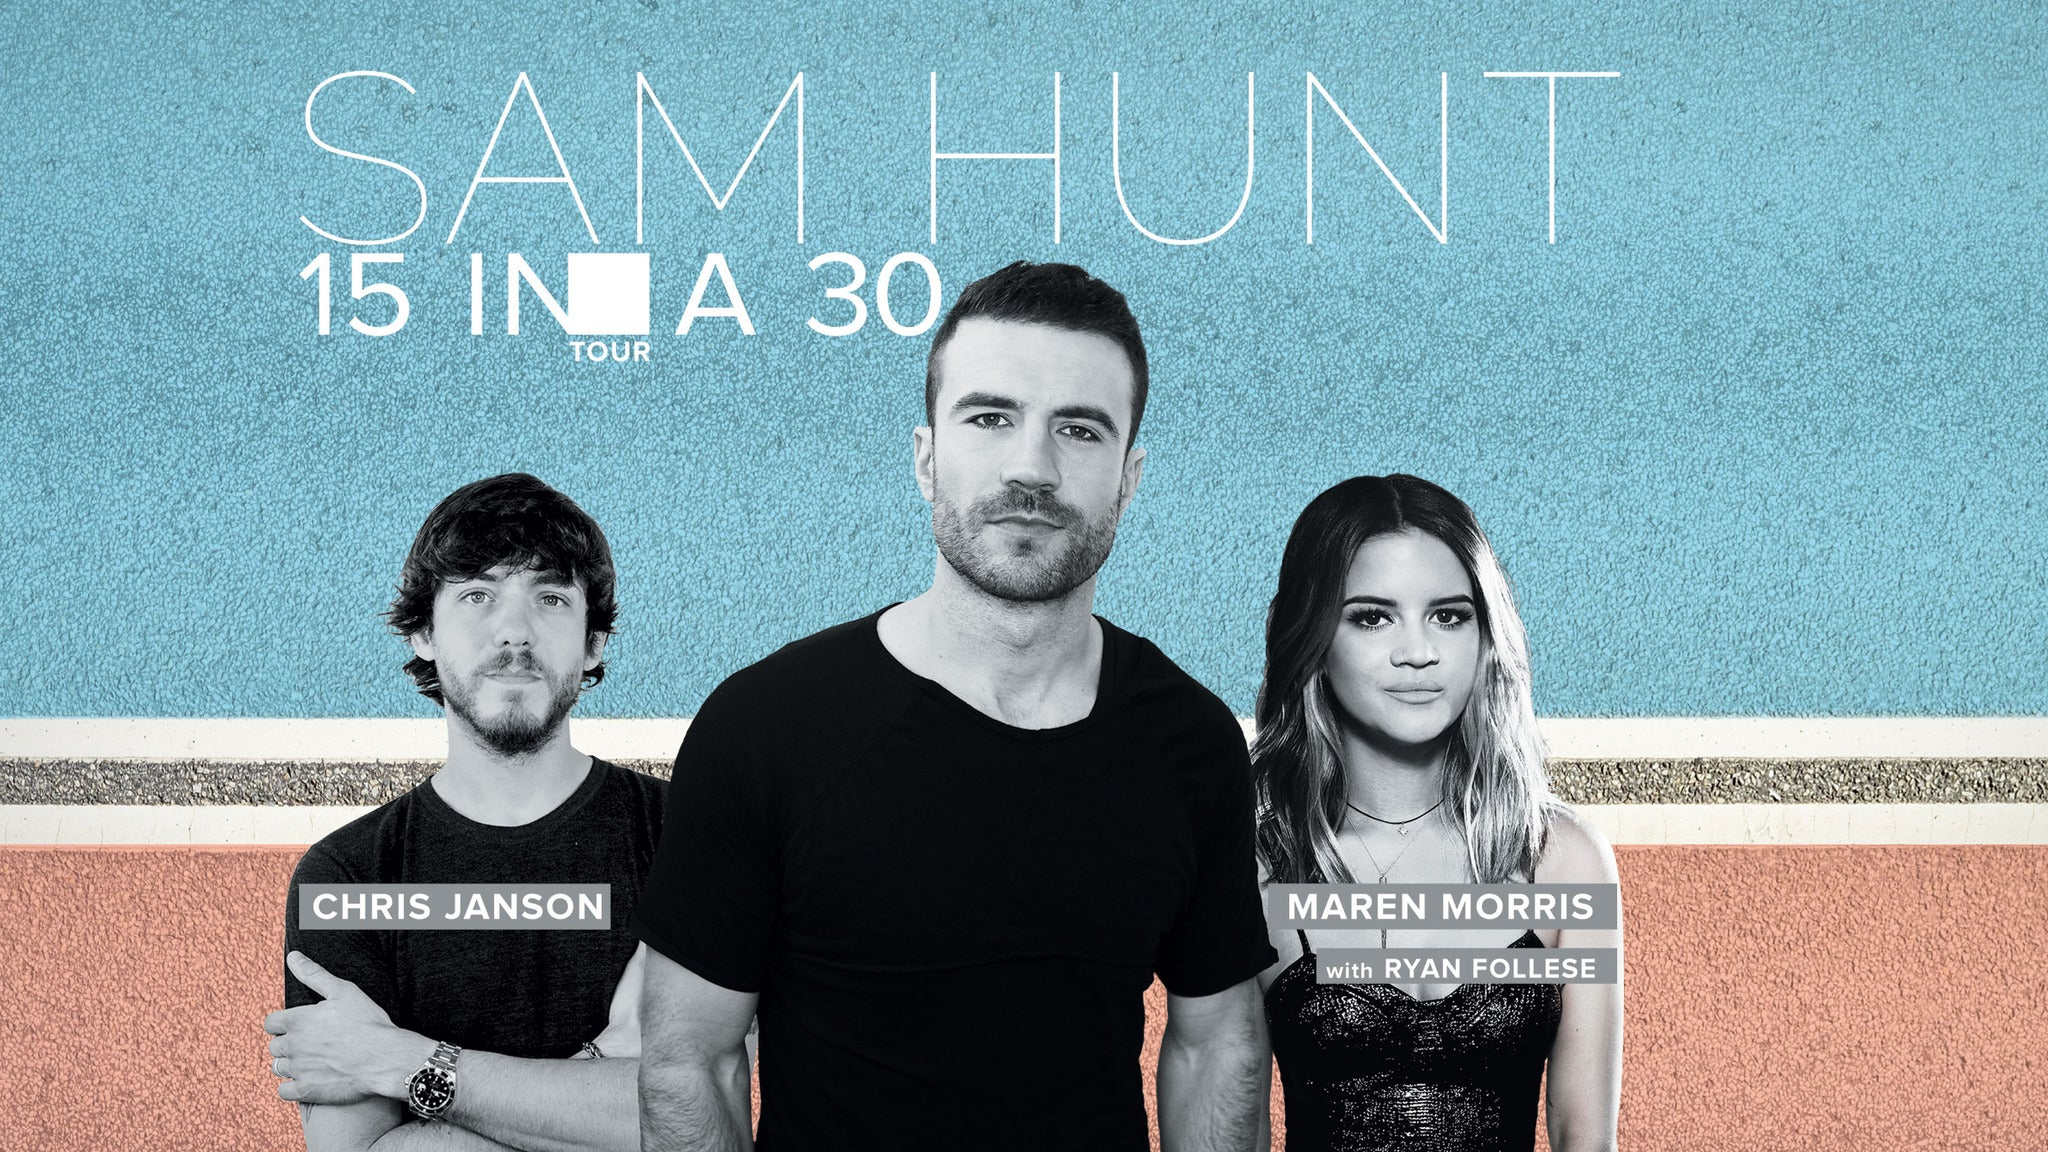 Sam Hunt 15 In A 30 Tour at Shoreline Amphitheatre